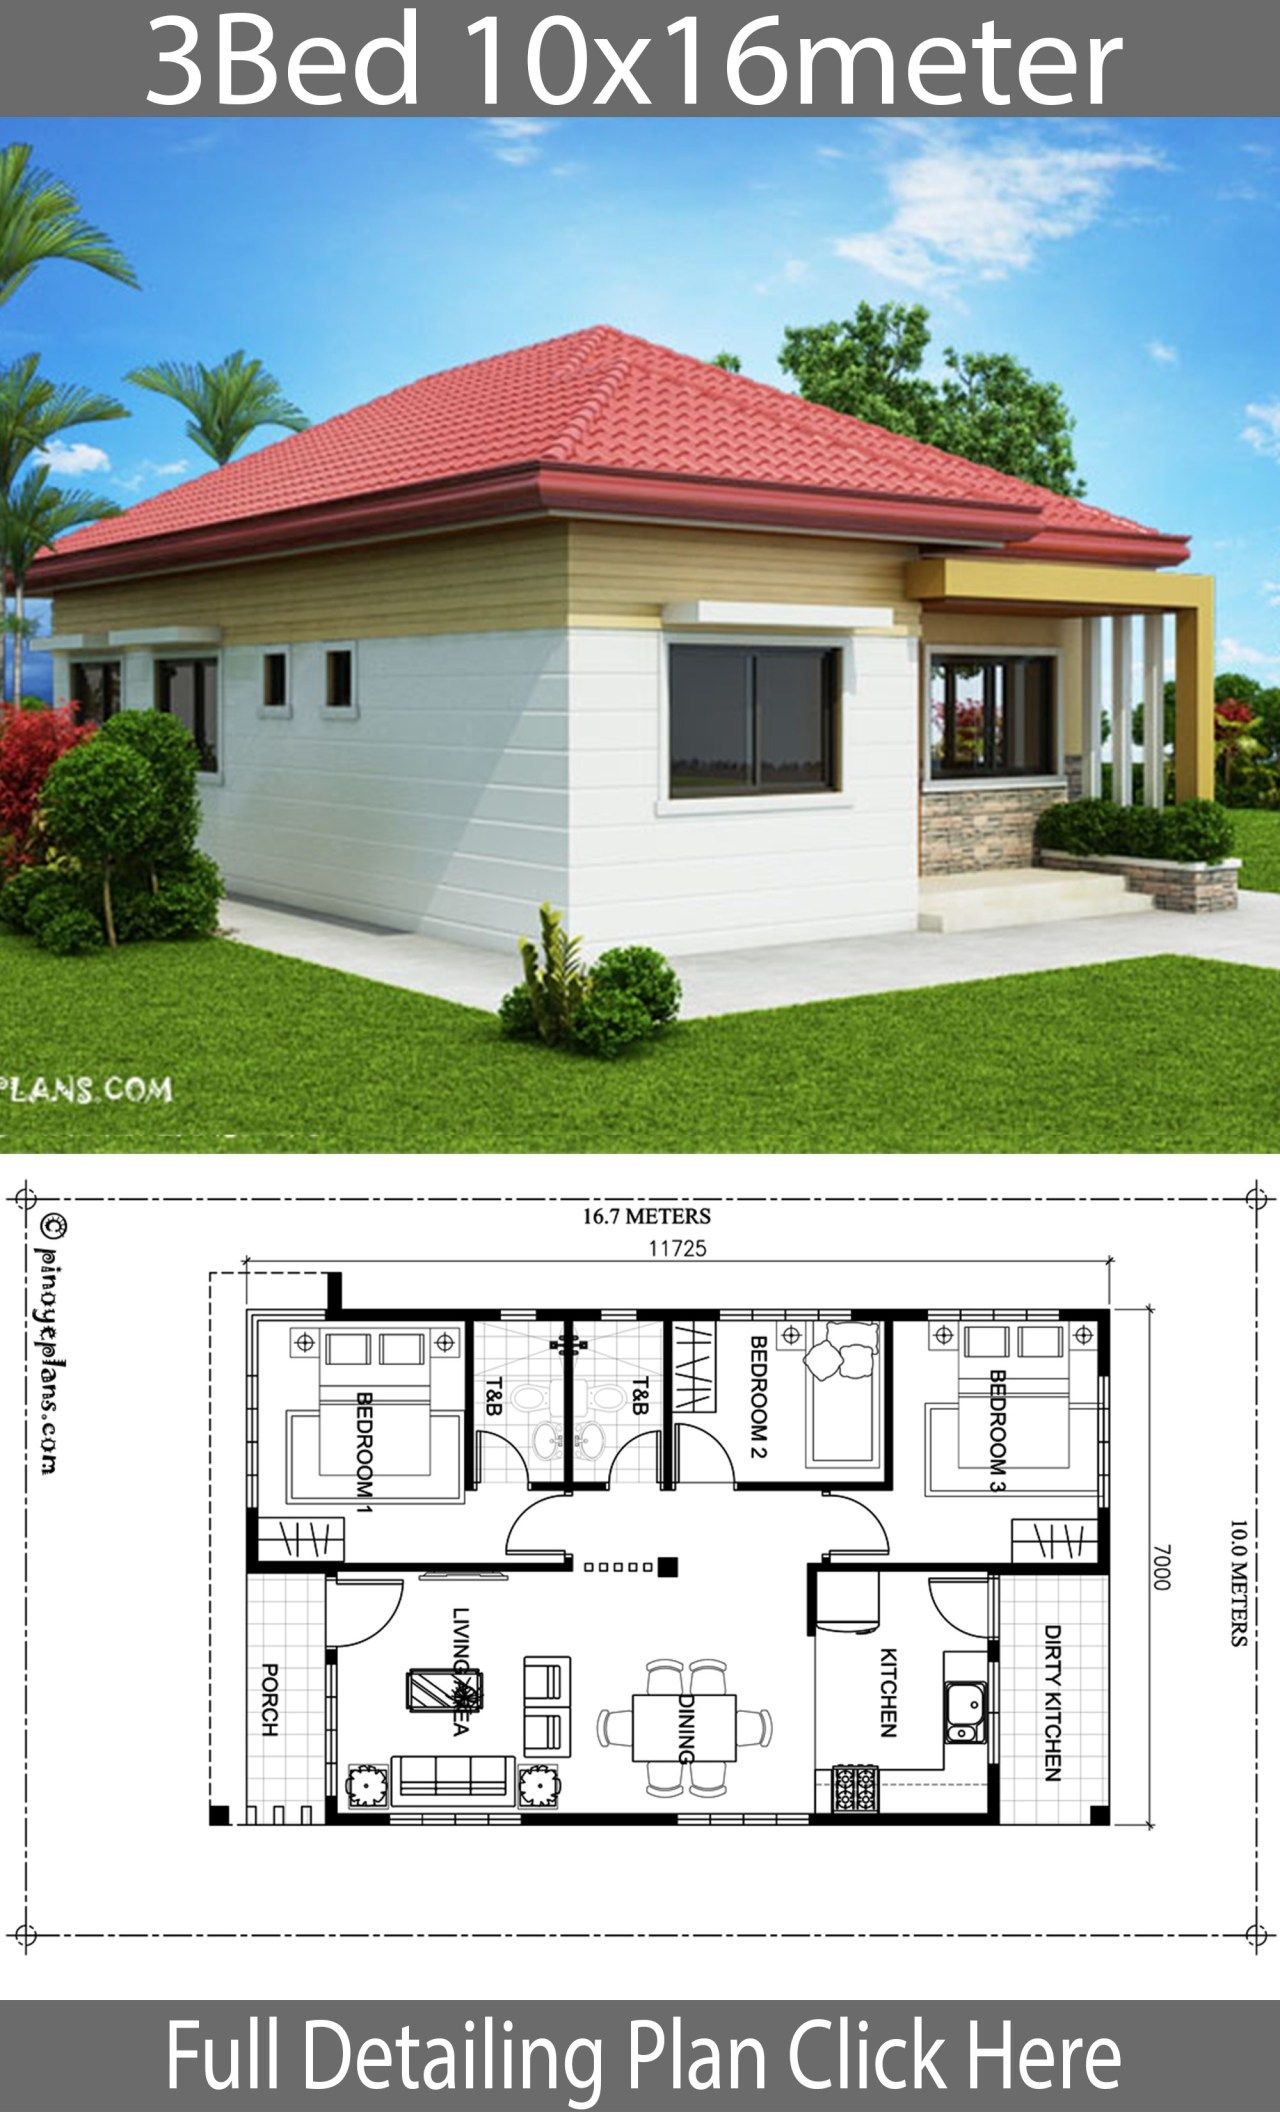 Home Design 10x16m With 3 Bedrooms Home Ideas Bungalow Style House Plans Cottage Style House Plans House Construction Plan